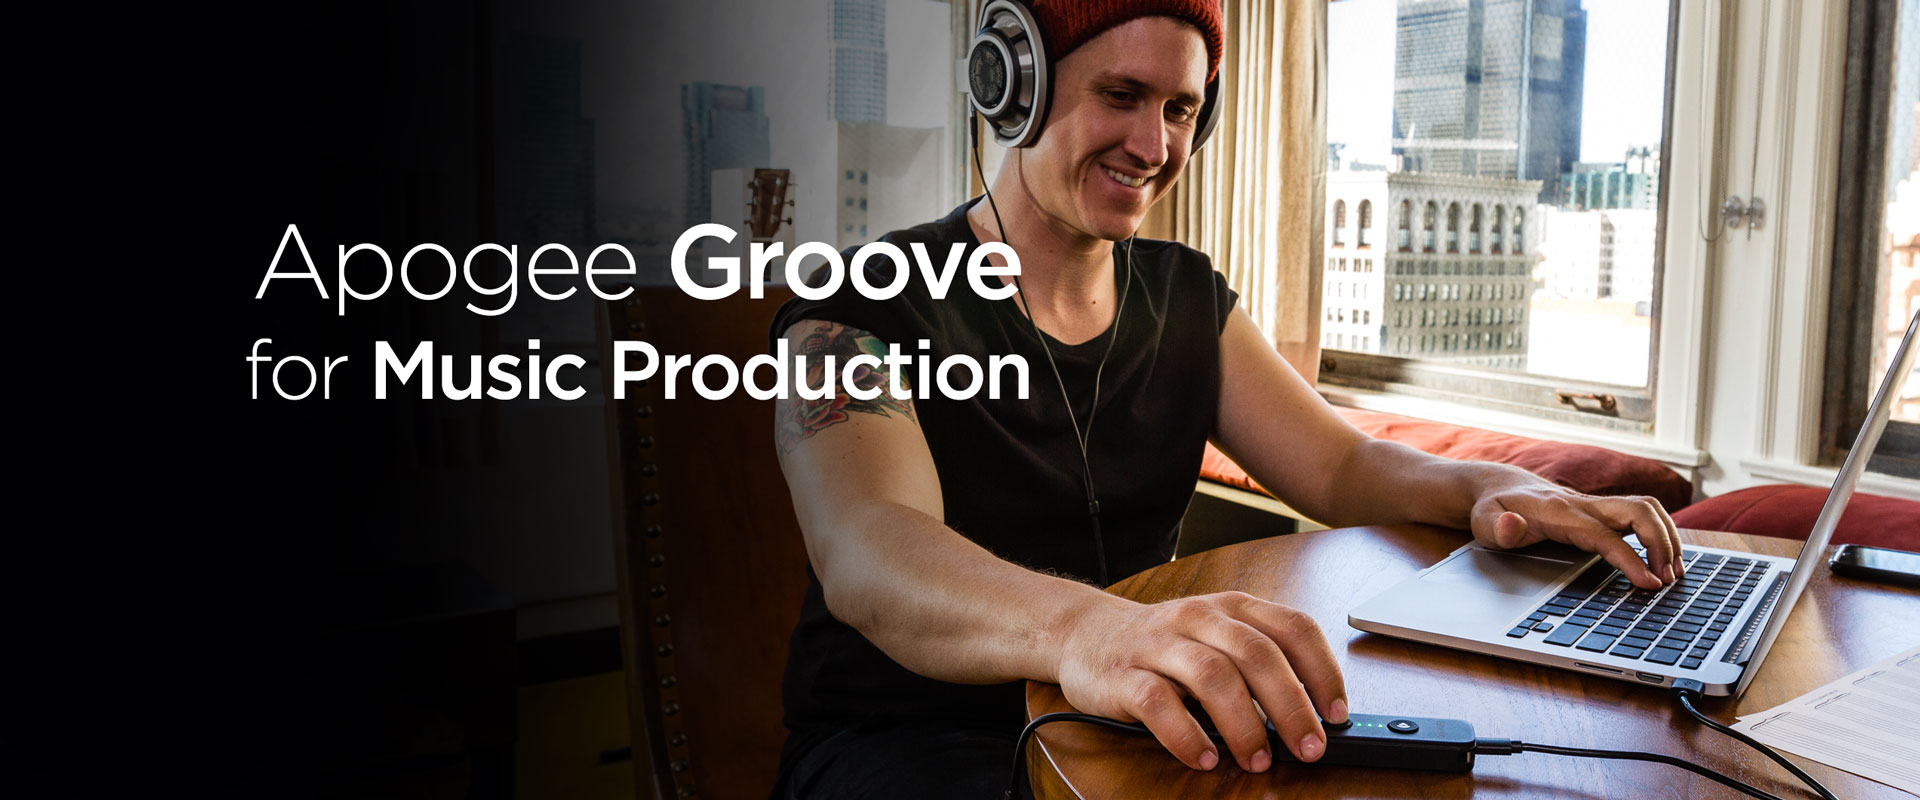 Apogee Groove for Music Production